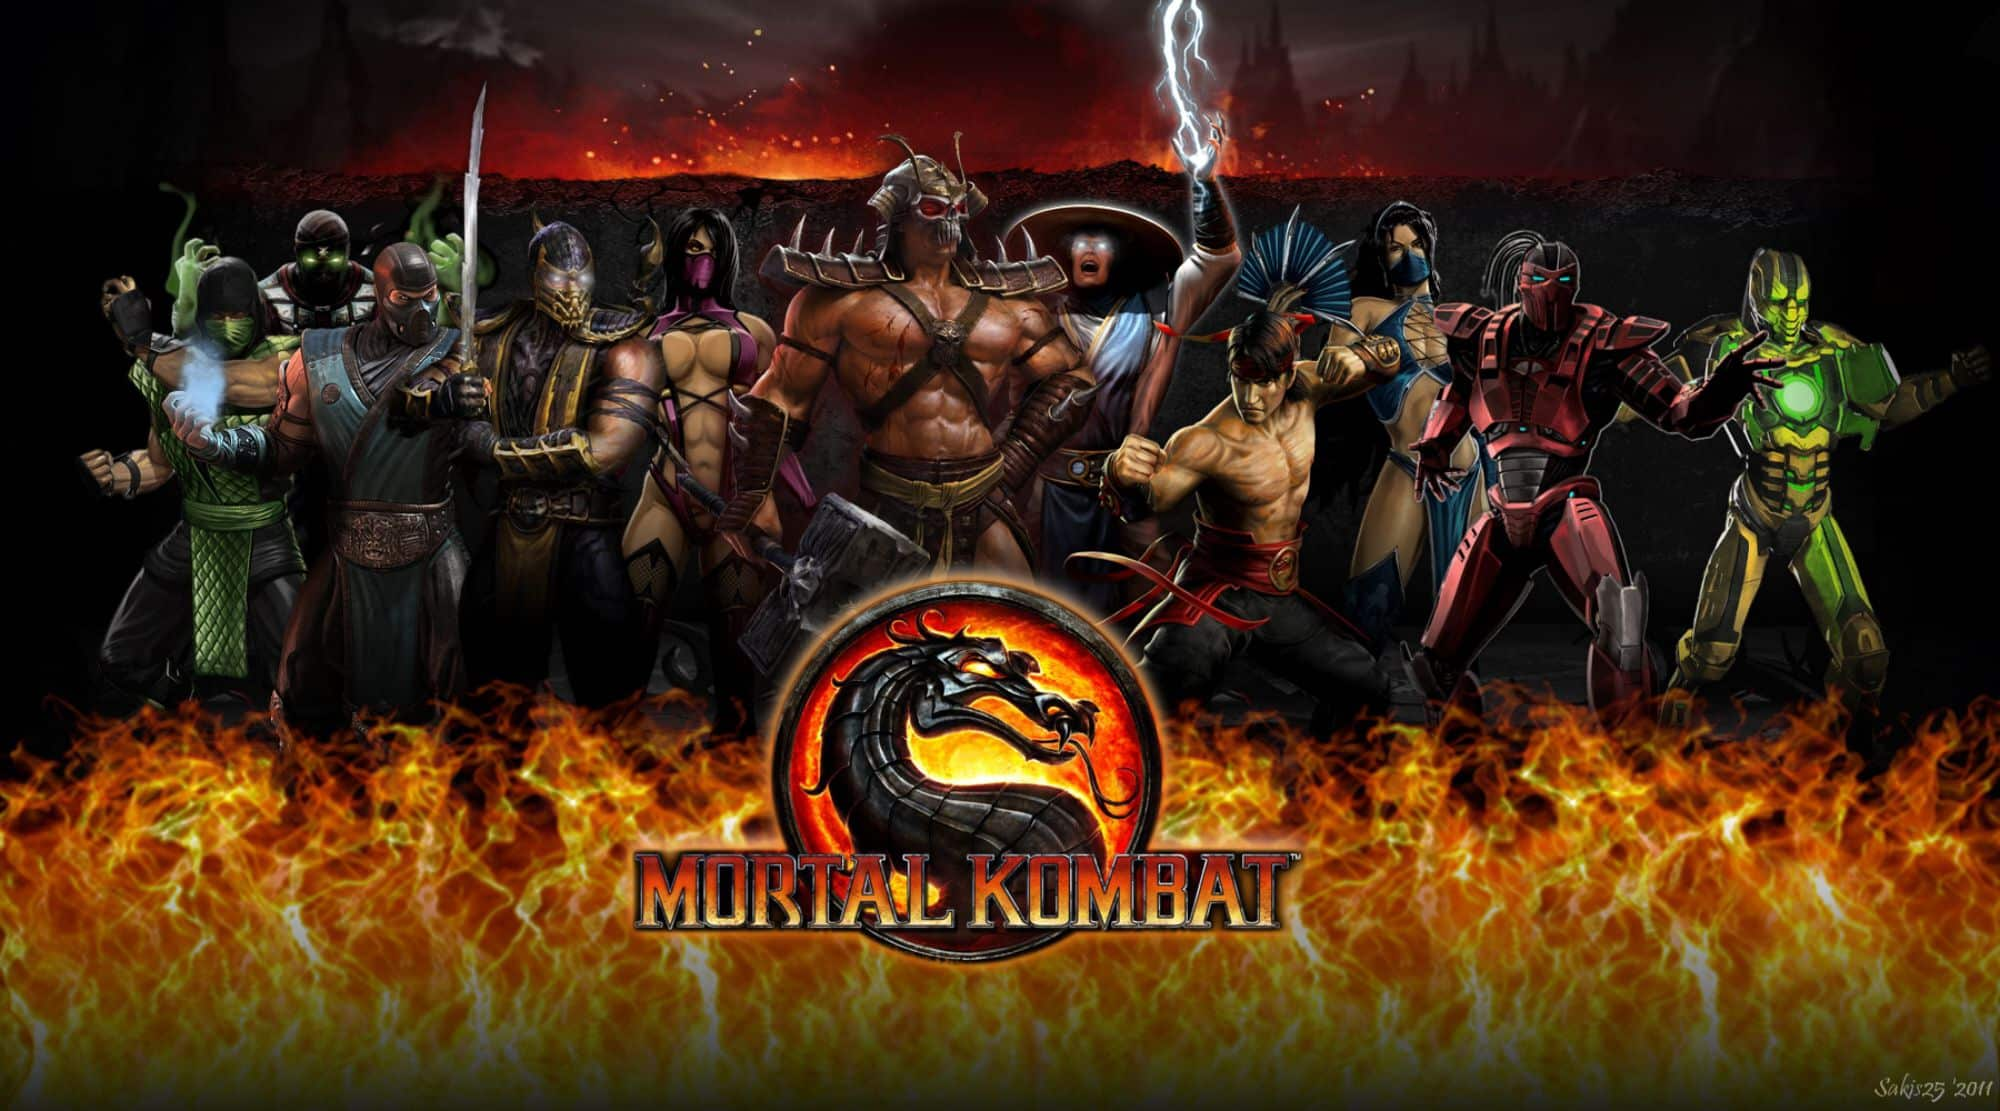 Mortal Kombat 9 Characters Full Roster For Komplete Edition